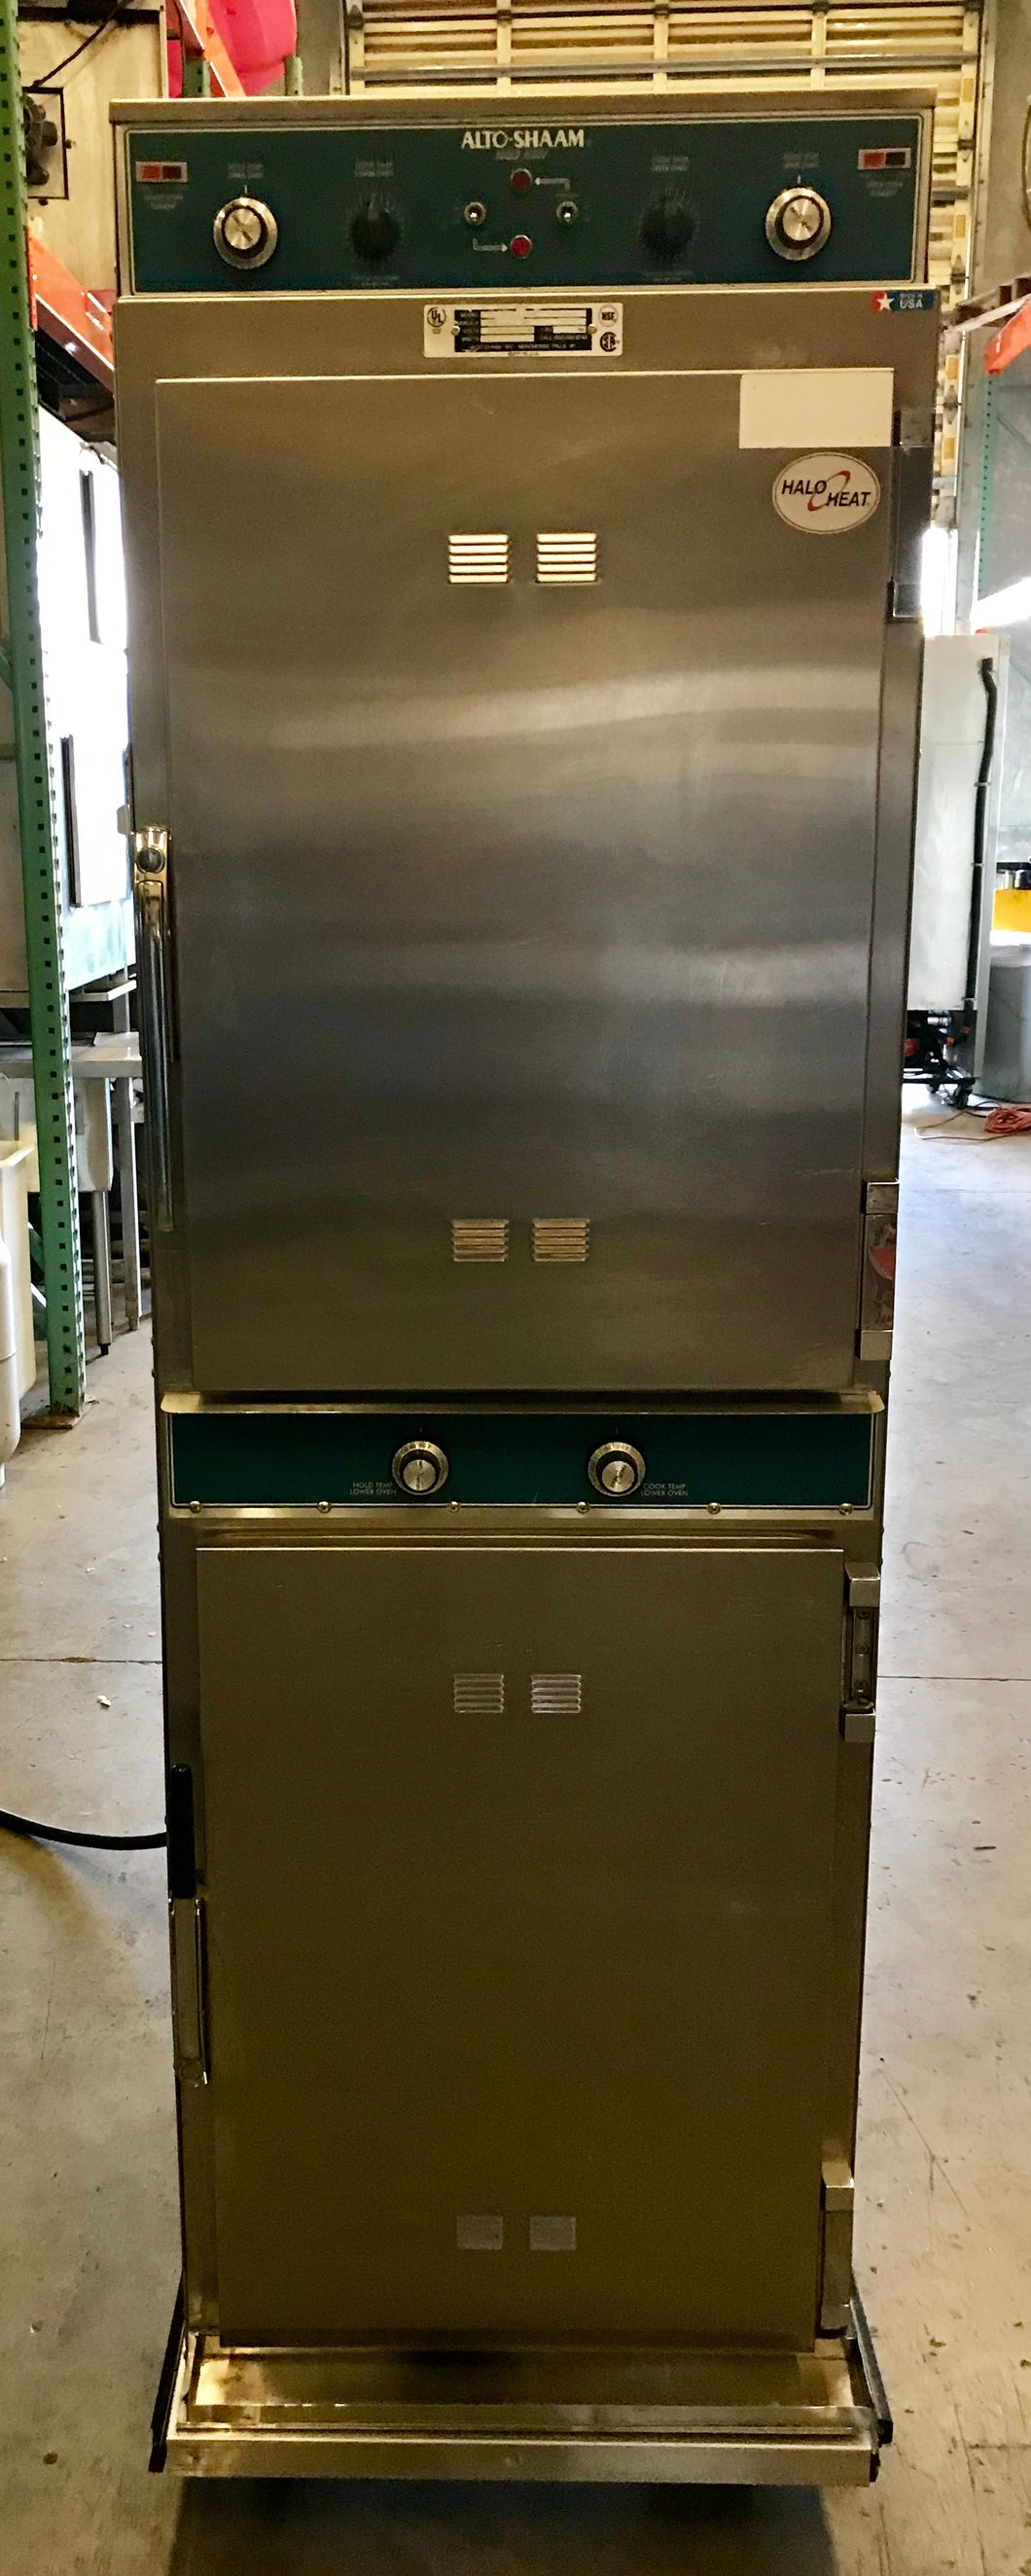 ALTO SHAAM 1000 TH I DOUBLE STACK COOK HOLD OVEN